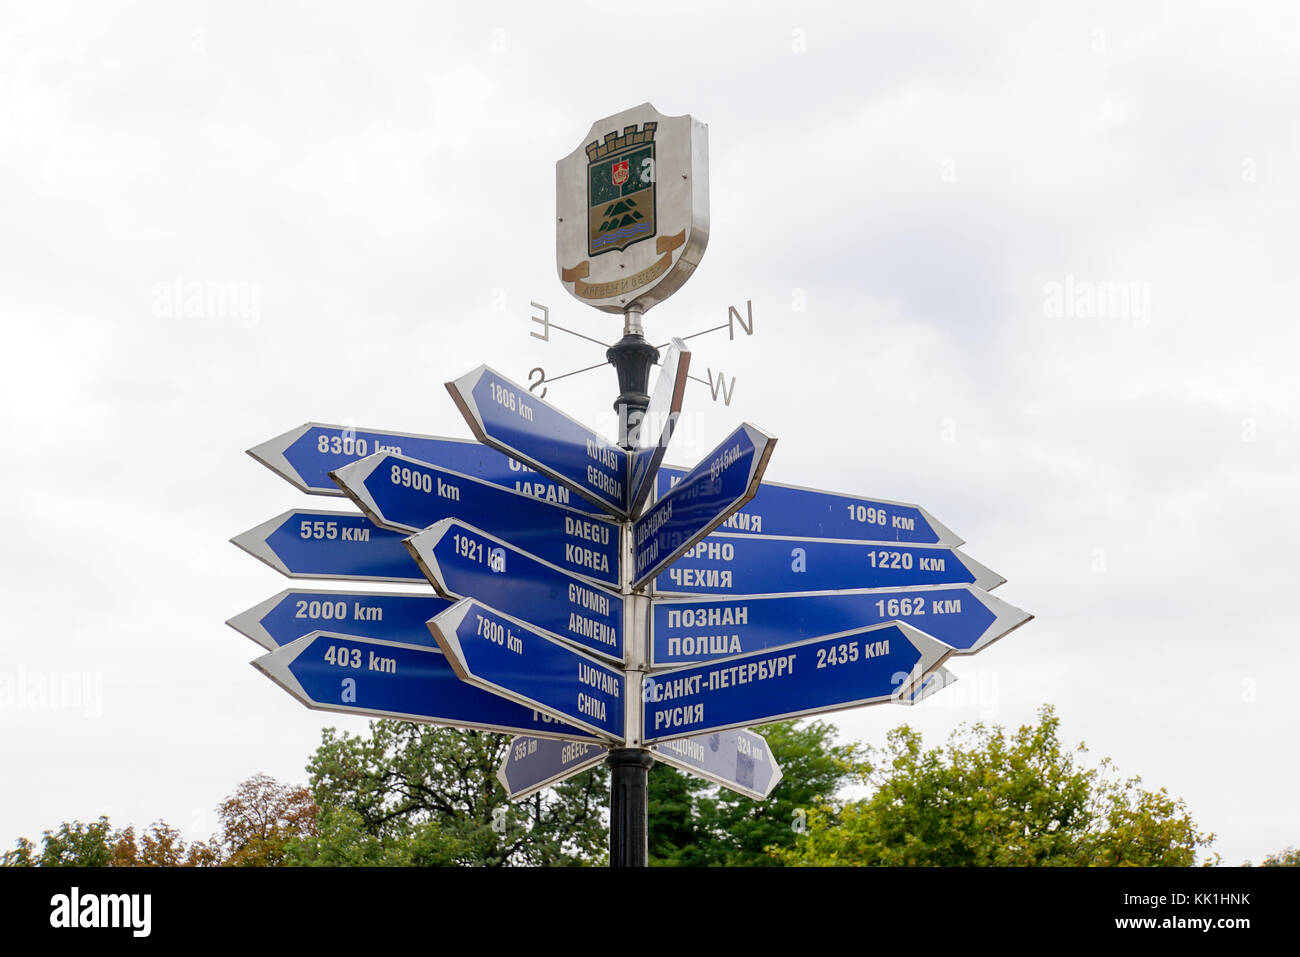 Sign showing distance and direction to the sister cities of Plovdiv, Bulgaria - Stock Image